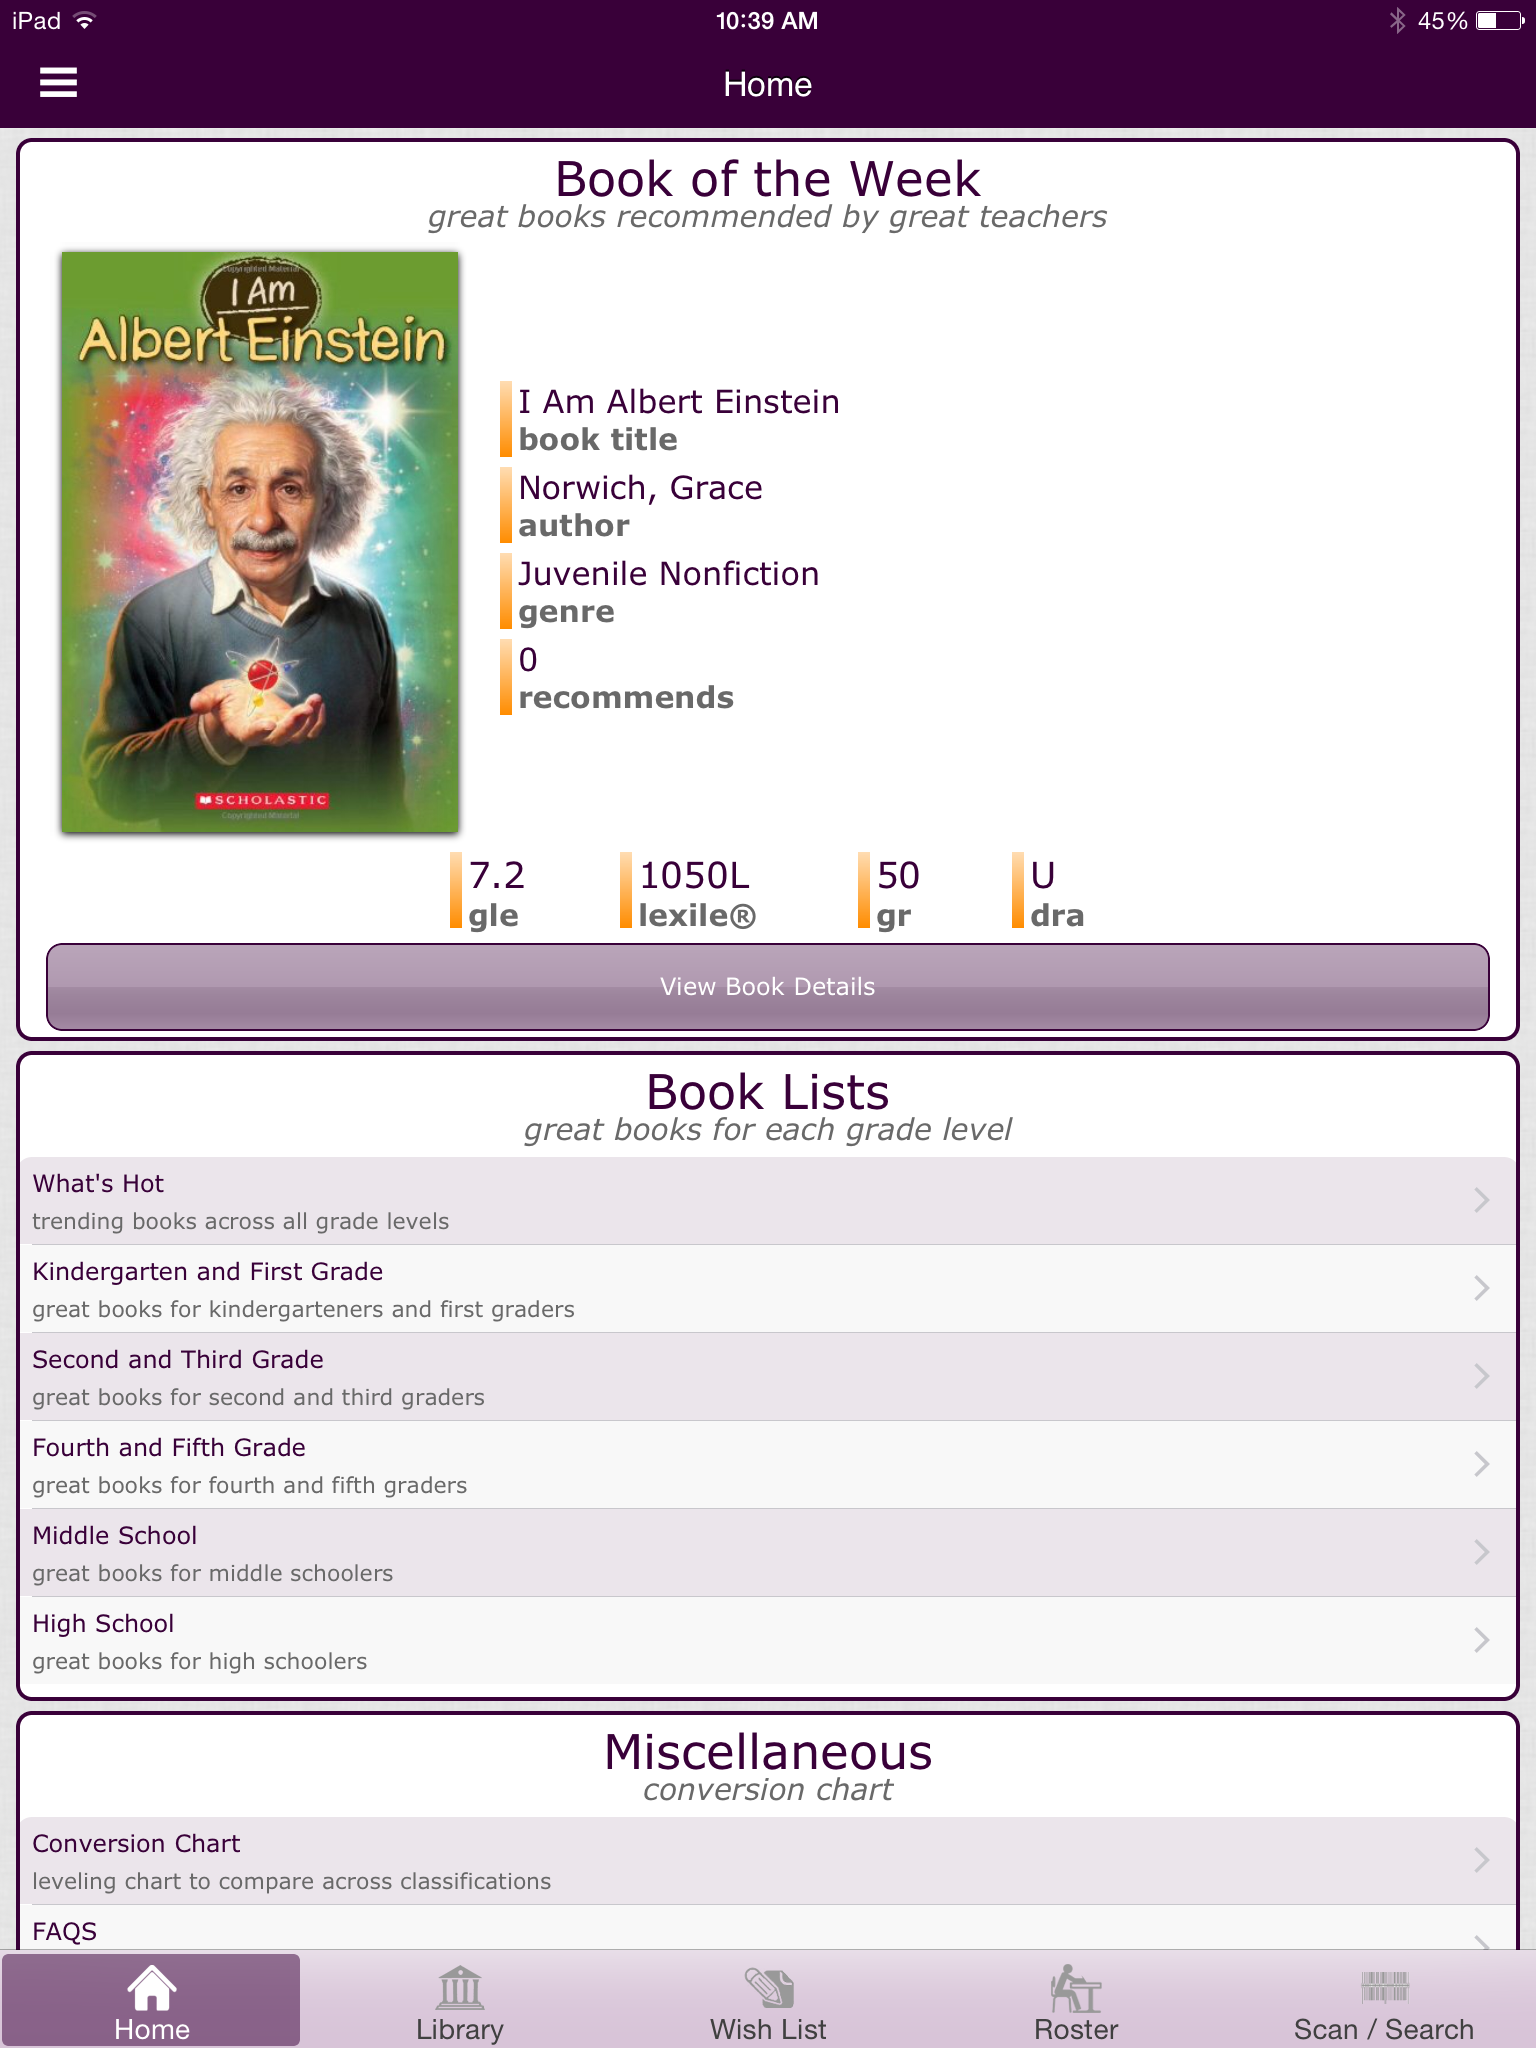 Level it books review for teachers common sense education digitally manage your real life library nvjuhfo Gallery